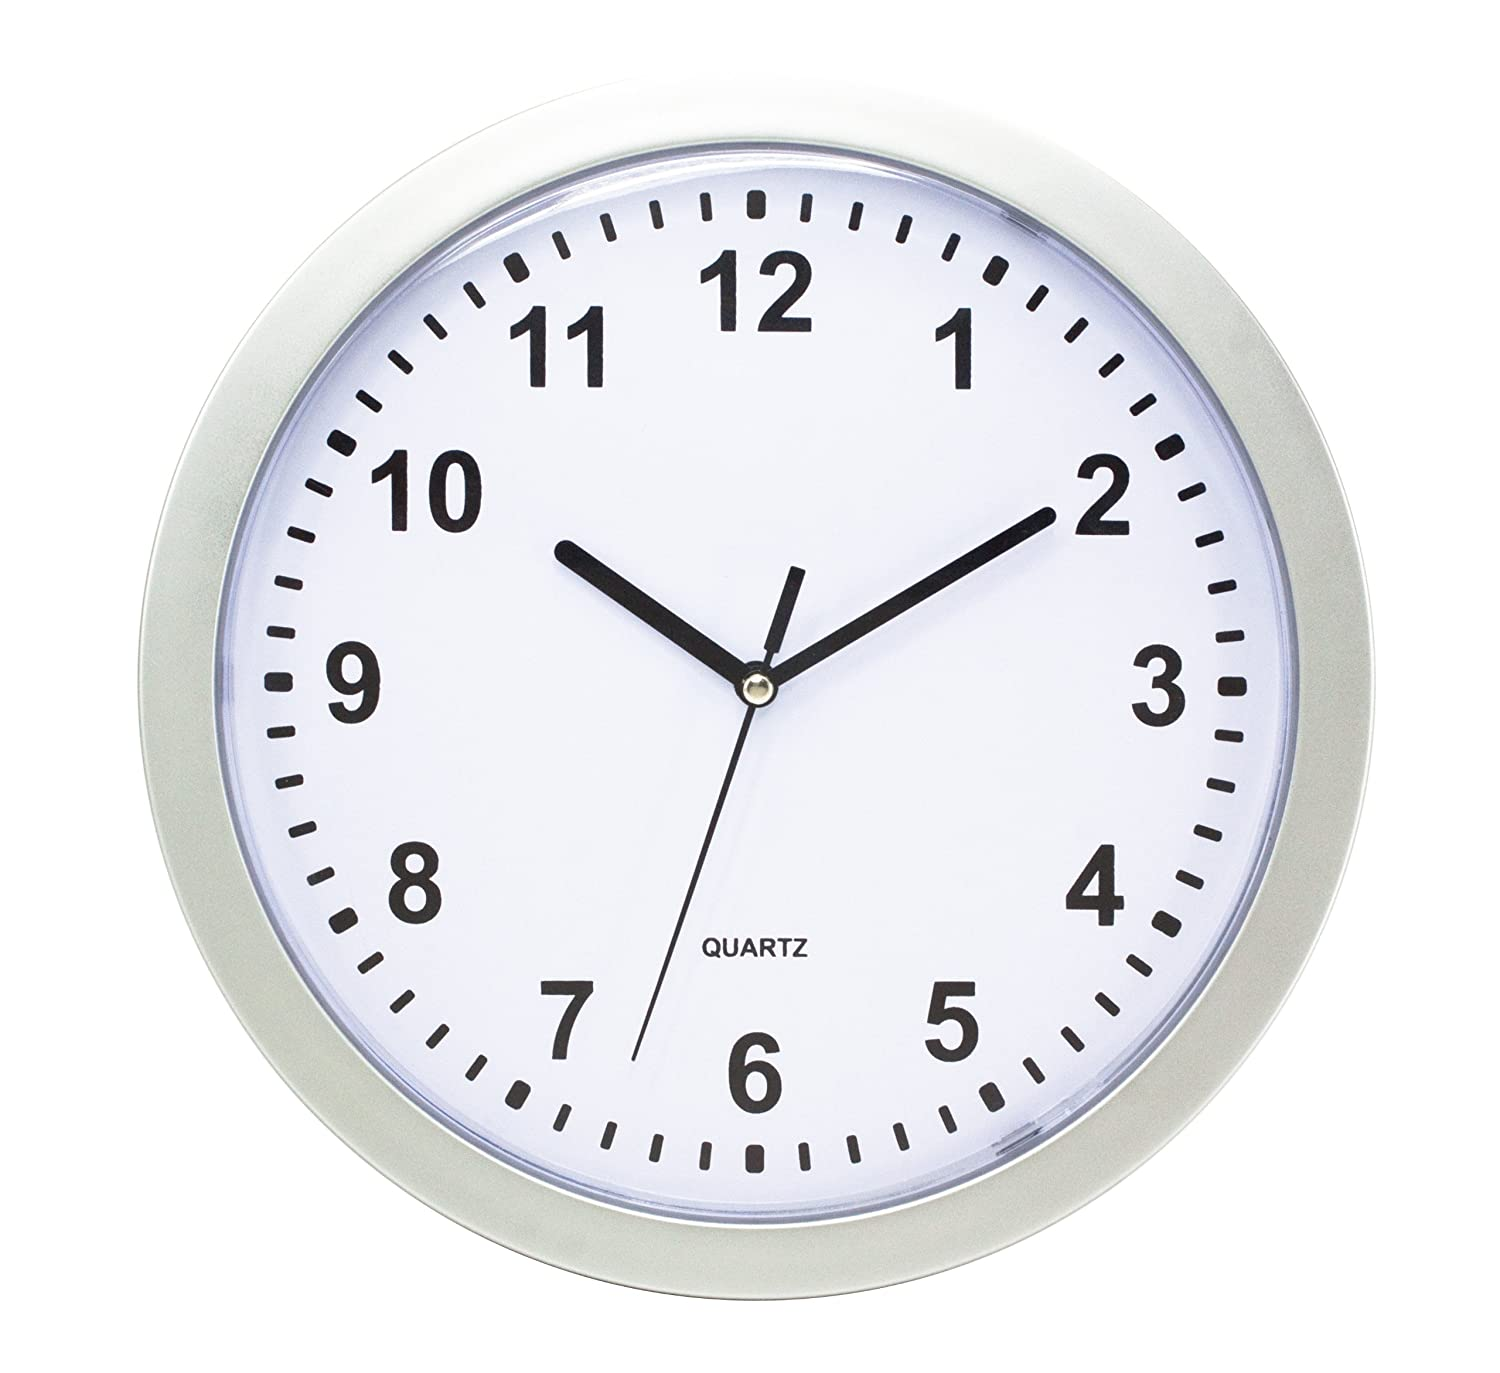 Amazon total vision 10 wall clock hidden storage home amazon total vision 10 wall clock hidden storage home kitchen amipublicfo Image collections